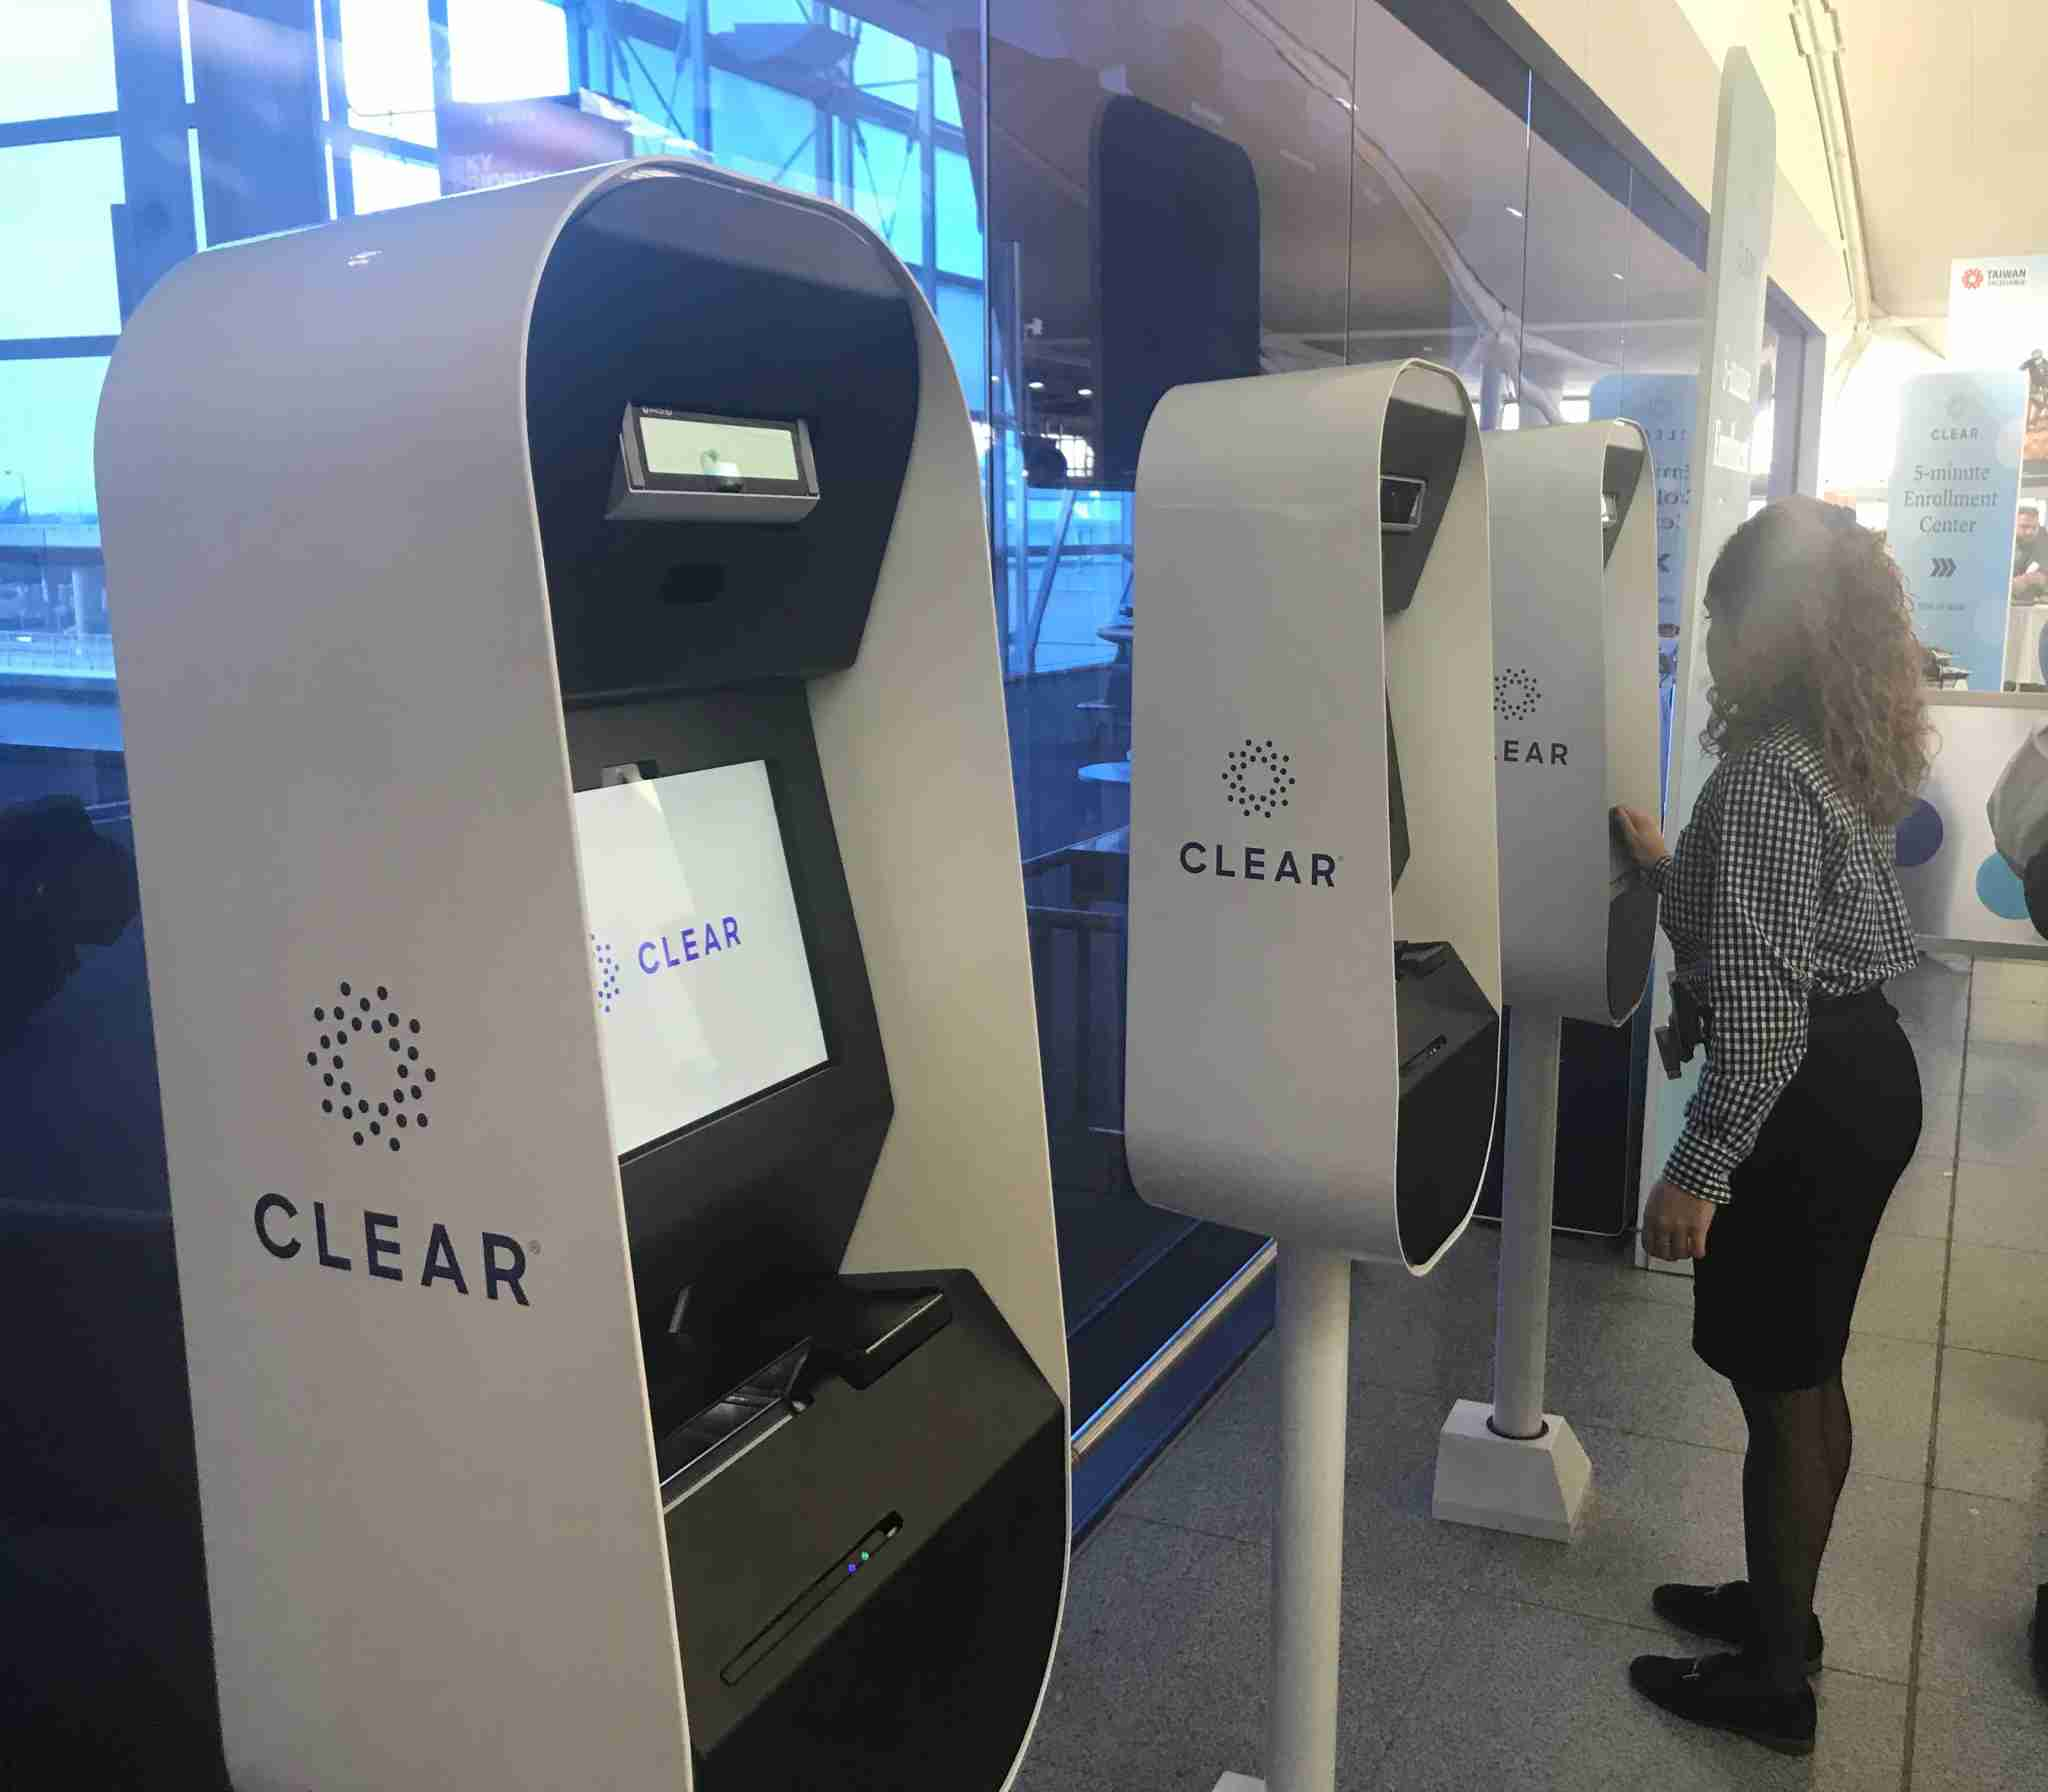 Customers user CLEAR kiosks at New York JFK airport. (Courtesy of Delta Air Lines)